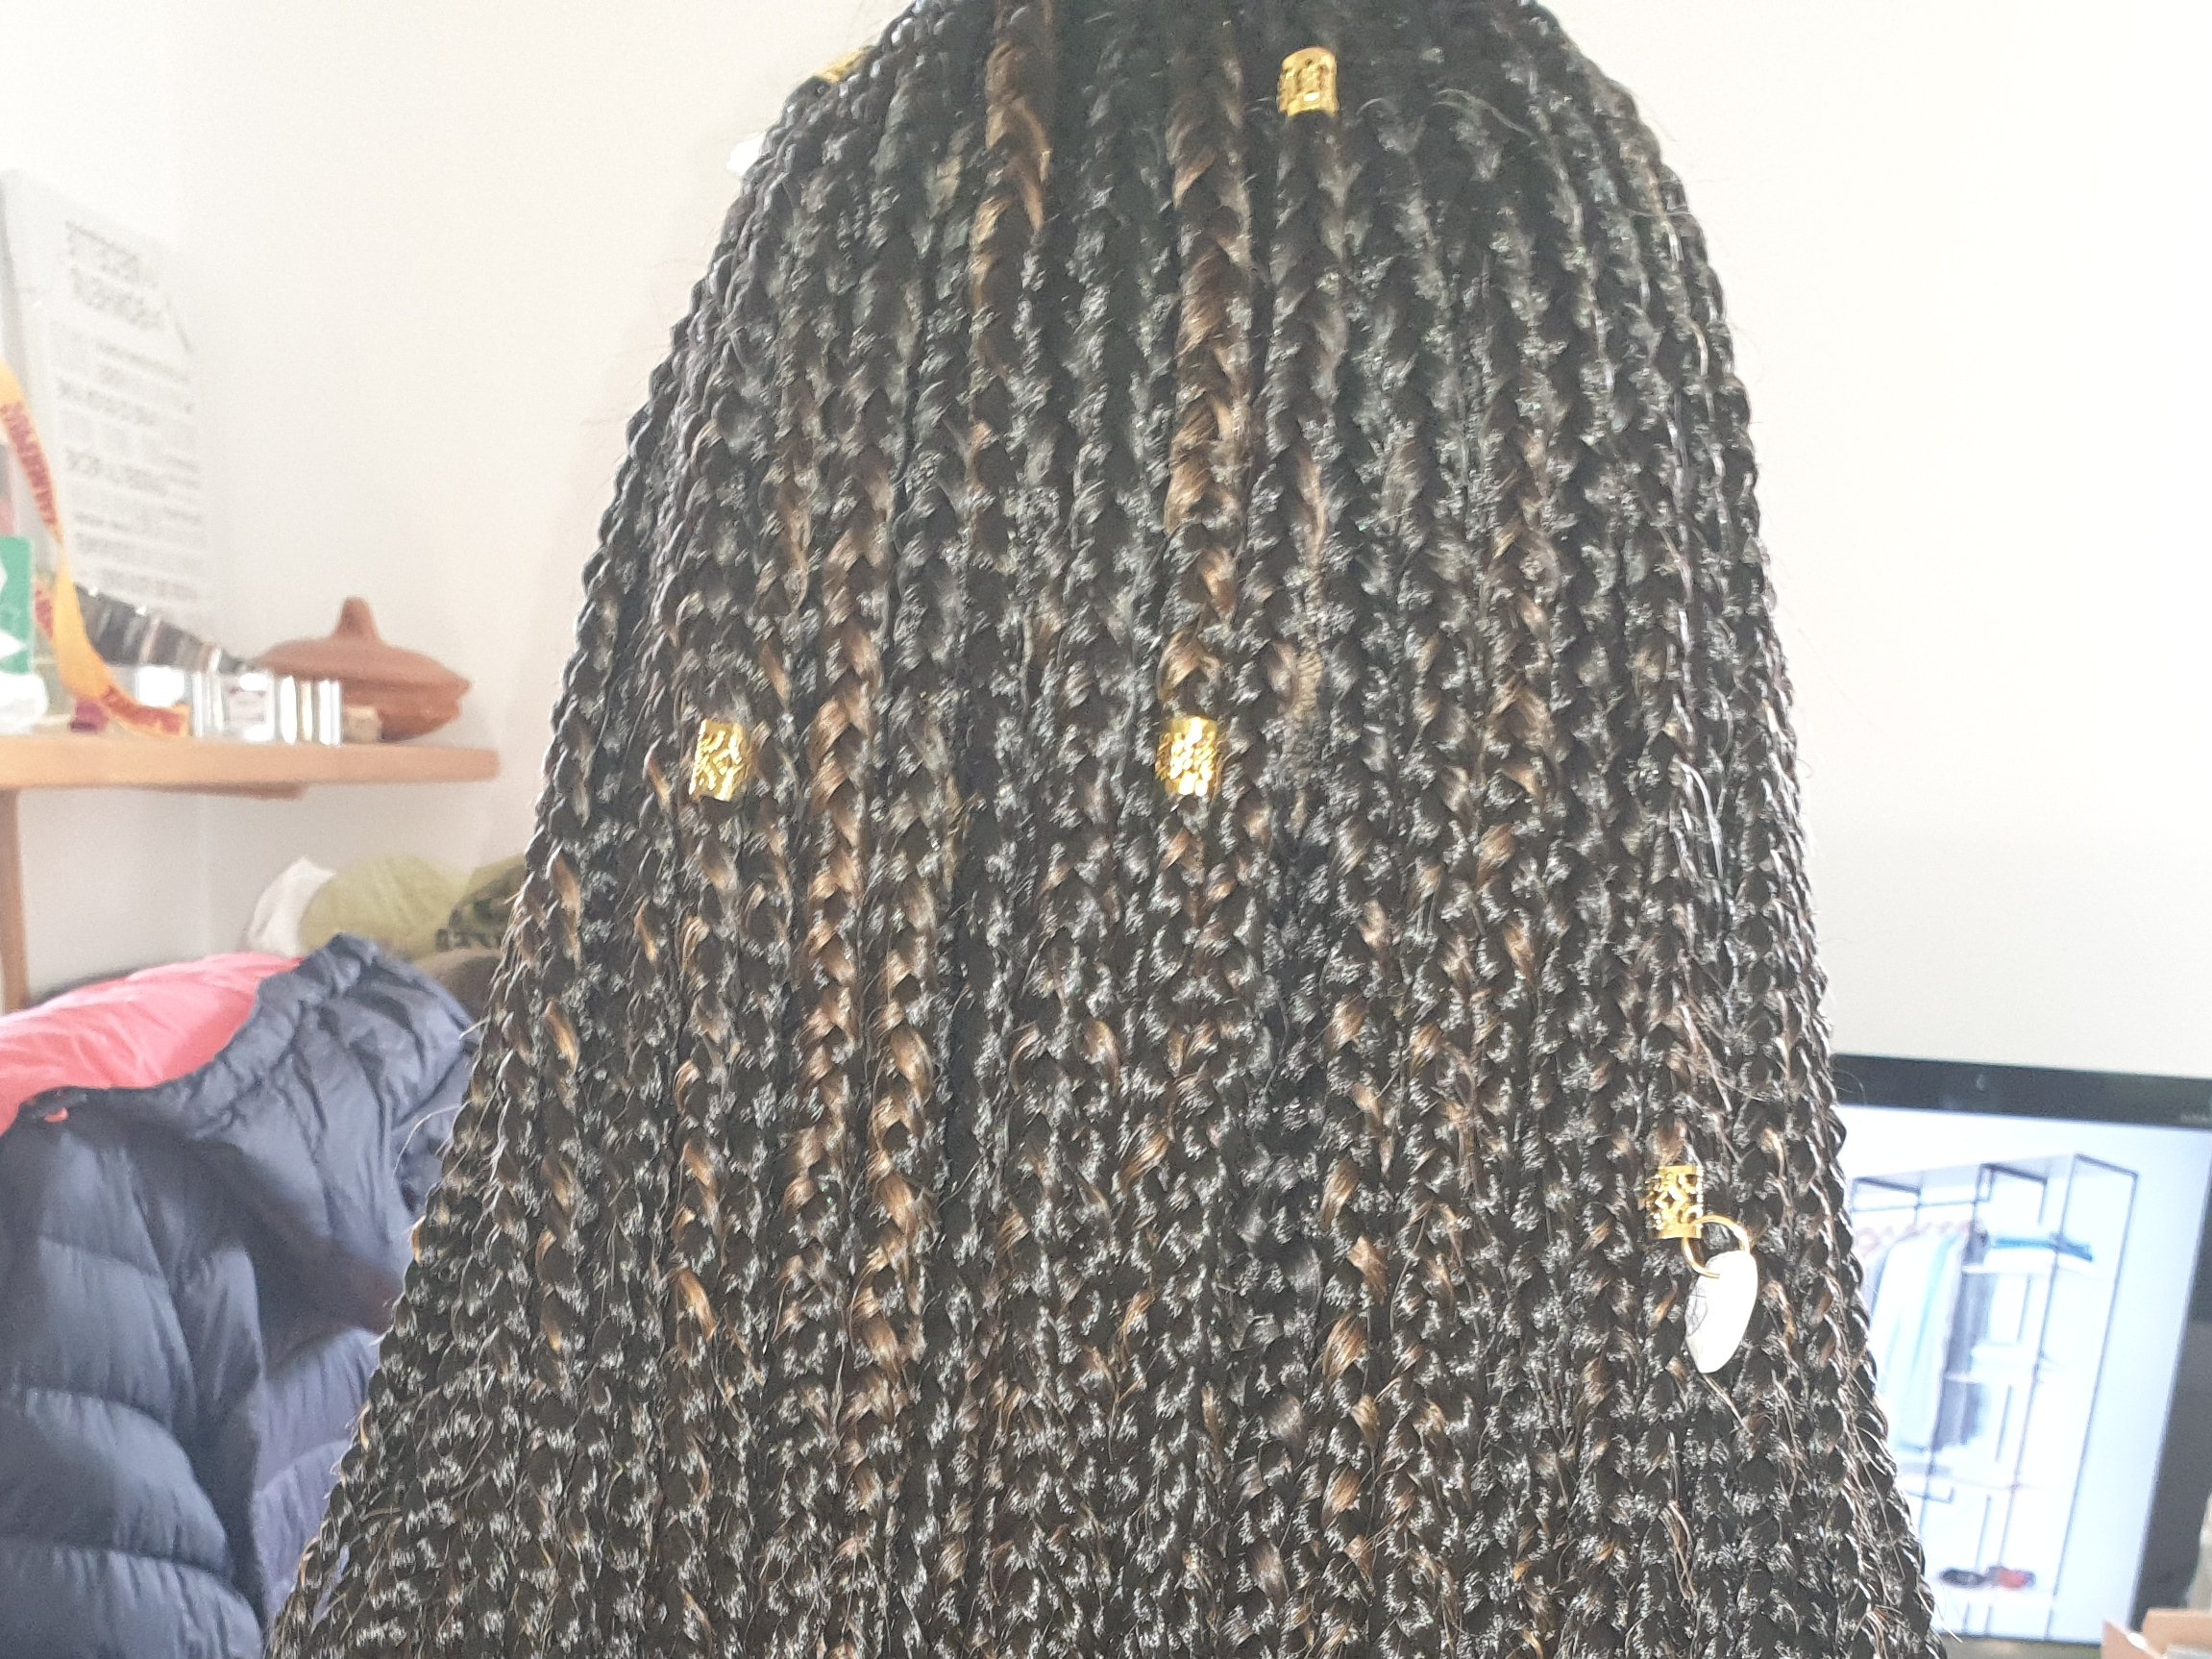 salon de coiffure afro tresse tresses box braids crochet braids vanilles tissages paris 75 77 78 91 92 93 94 95 AJVAOTVE